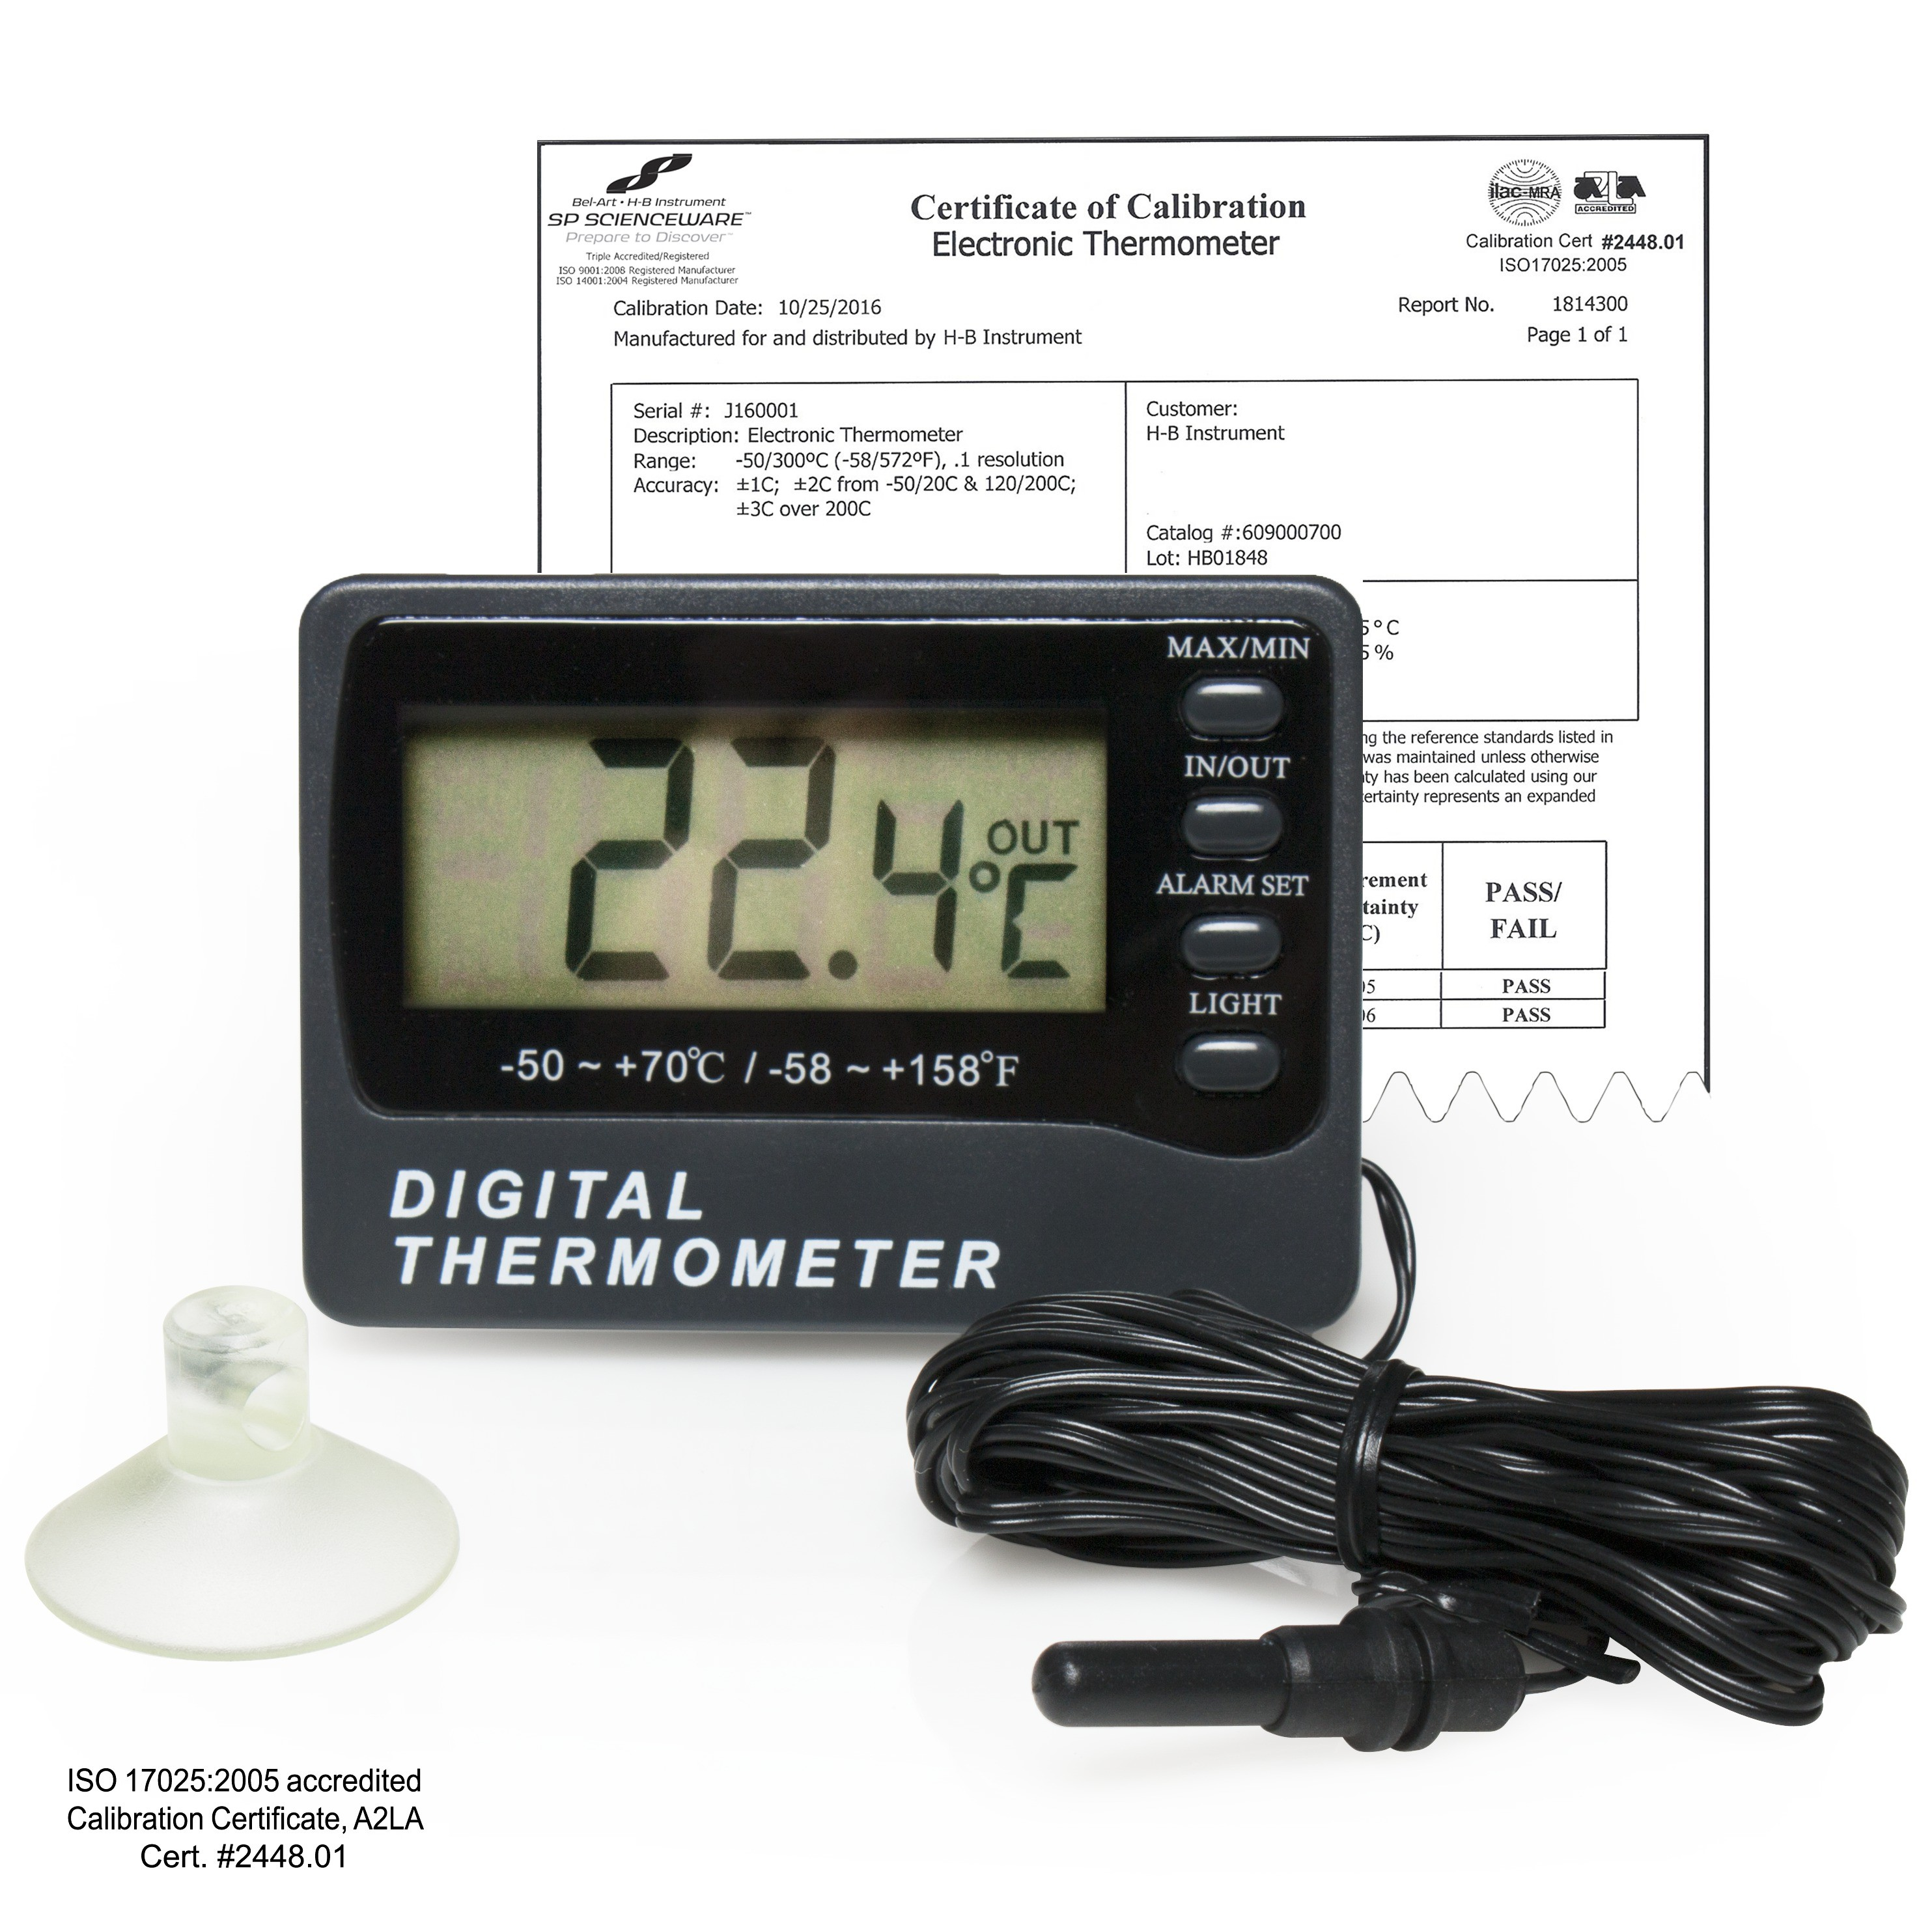 h b durac calibrated dual zone electronic thermometer with Electric Mixing Valve h b durac calibrated dual zone electronic thermometer with waterproof sensor; 50 70c (